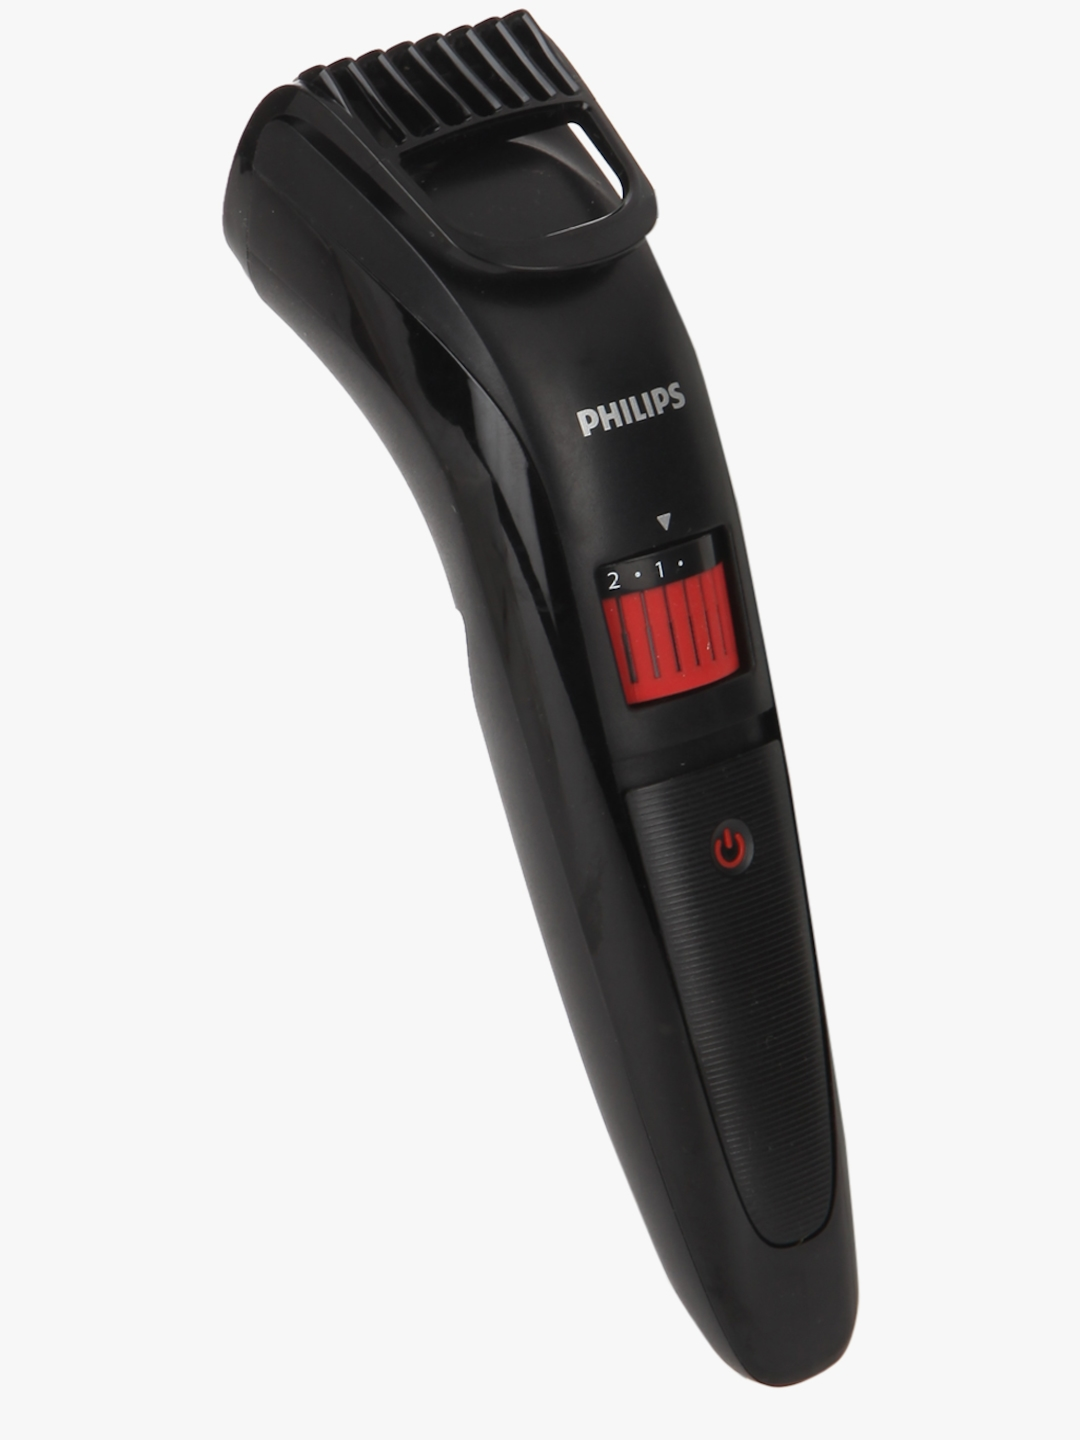 Qt4005/15 Rechargeable Trimmer: 20 Length Settings